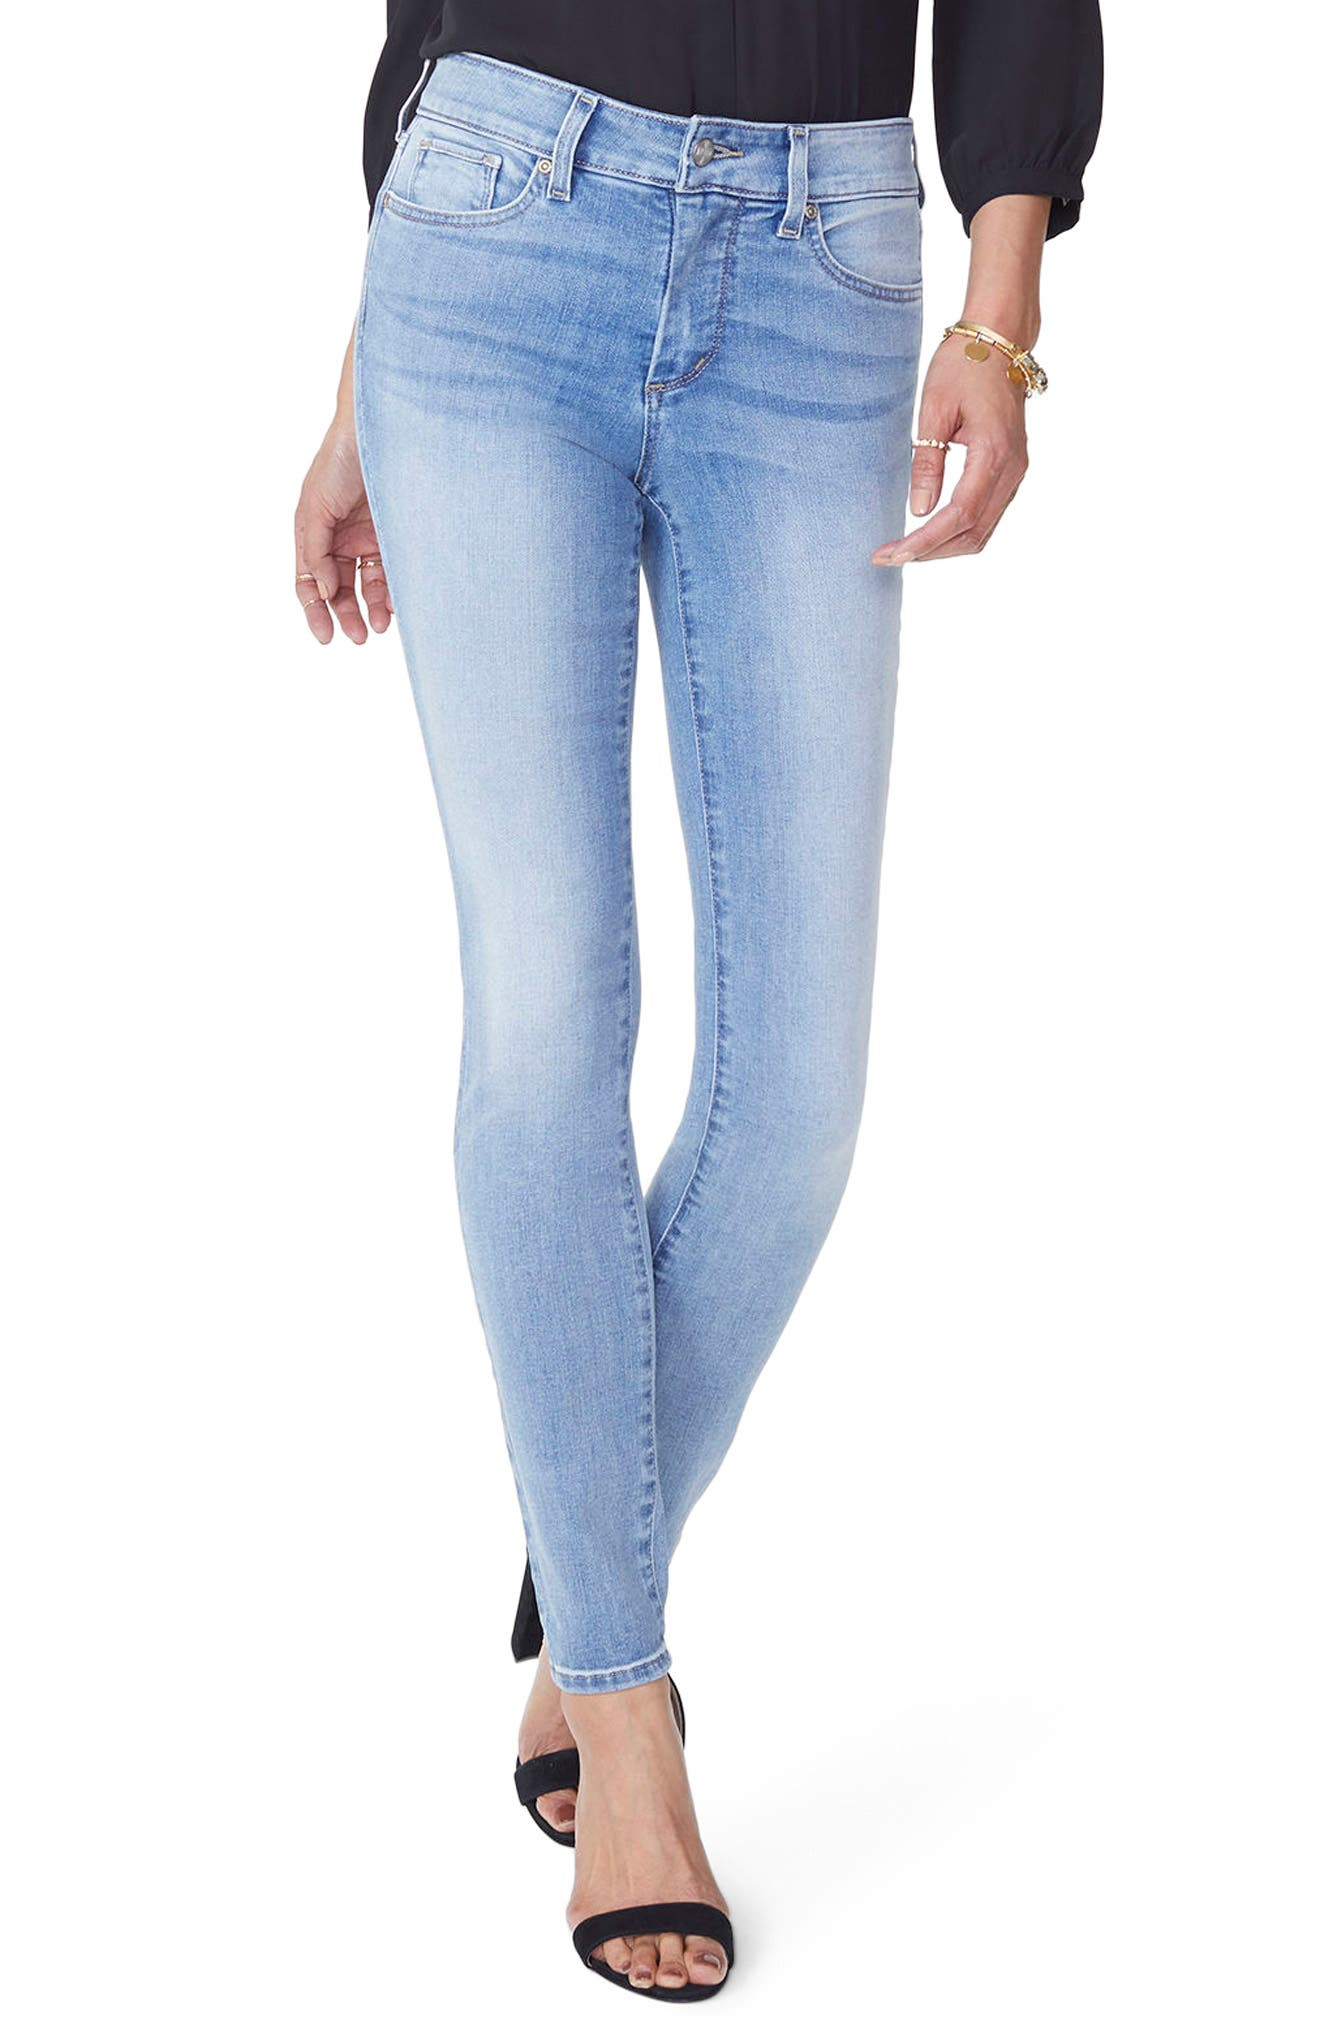 Nydj Jeans AMI HIGH WAIST STRETCH SKINNY JEANS